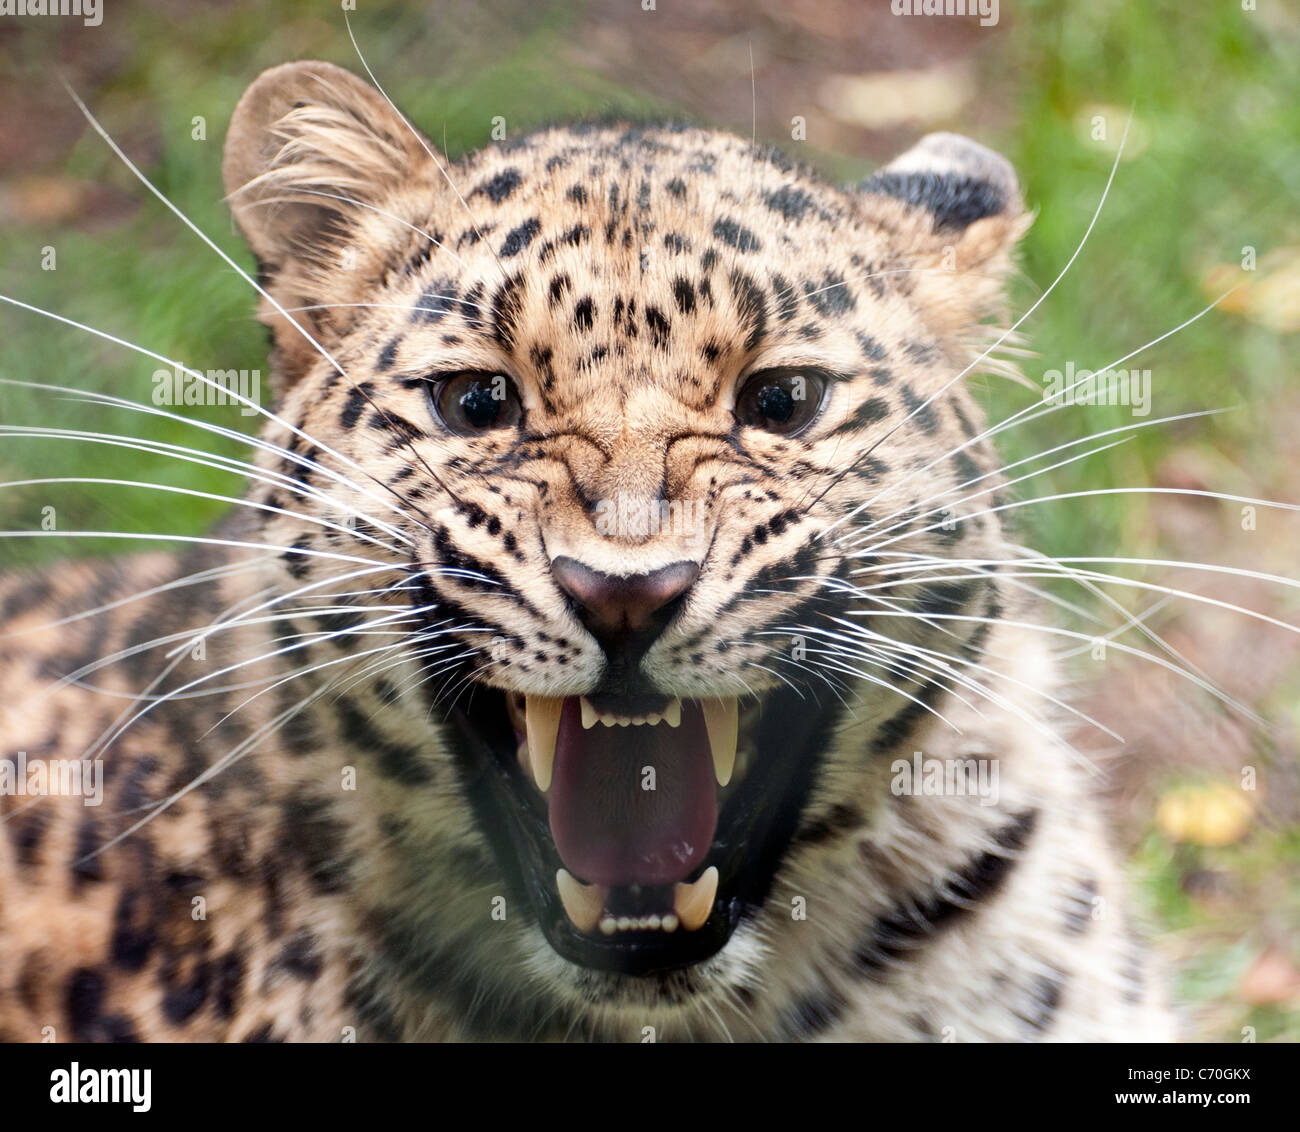 Female Amur leopard snarling at camera - Stock Image